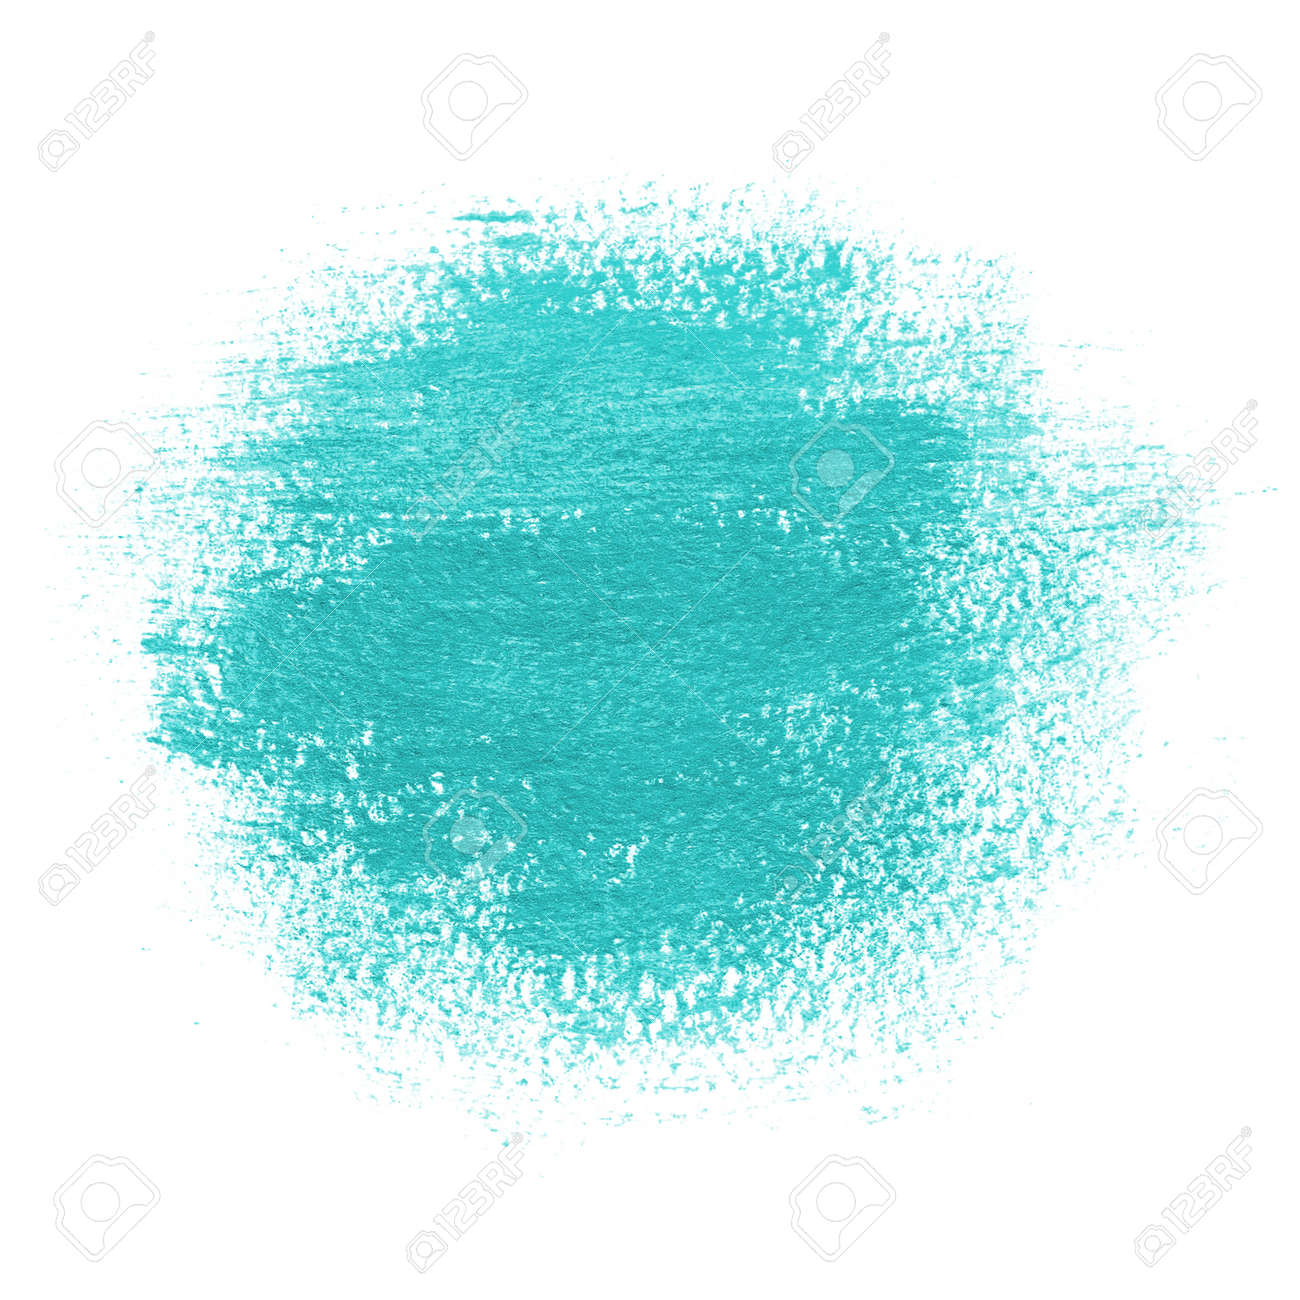 Round Paint Spot Drawn With Brush Stroke Bright Turquoise Blue